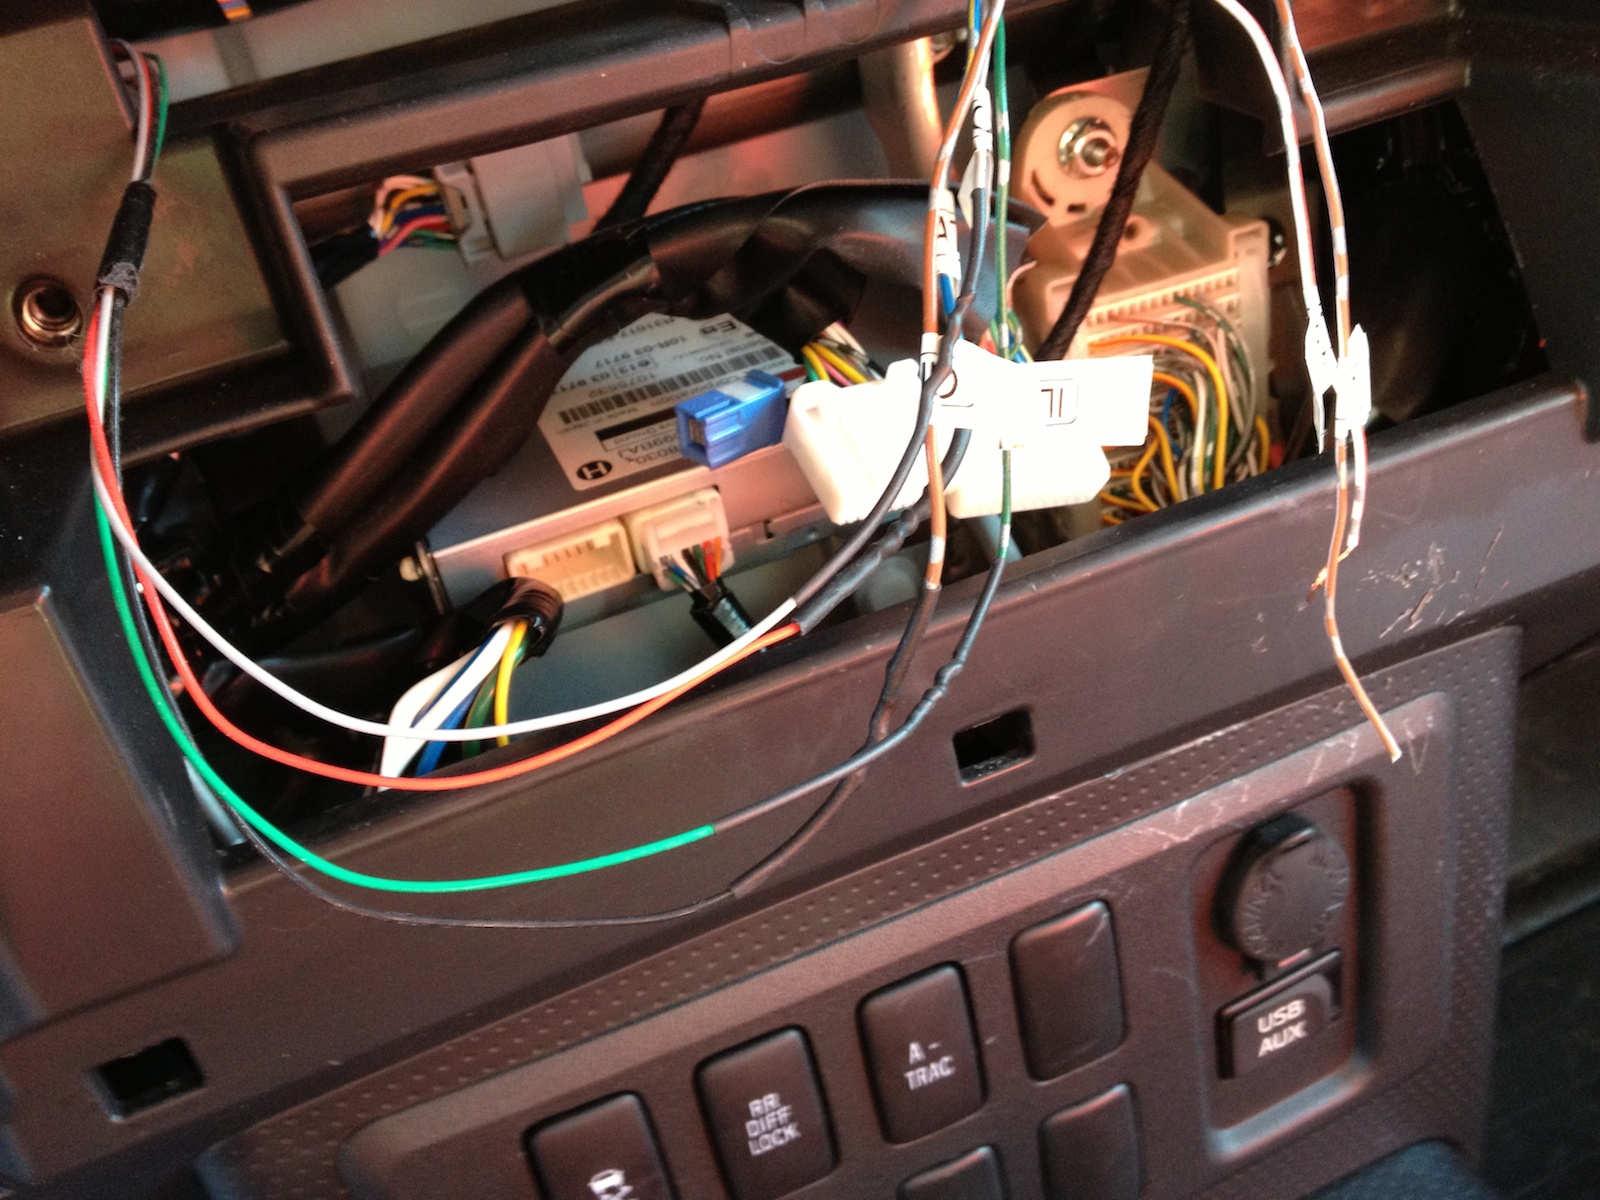 Toyota Fj Stereo Wiring Diagram 31 Images Cruiser Ohc 1271 Outback Roof Console Full Install Page 5 Forum 2010 The Illumination Wires